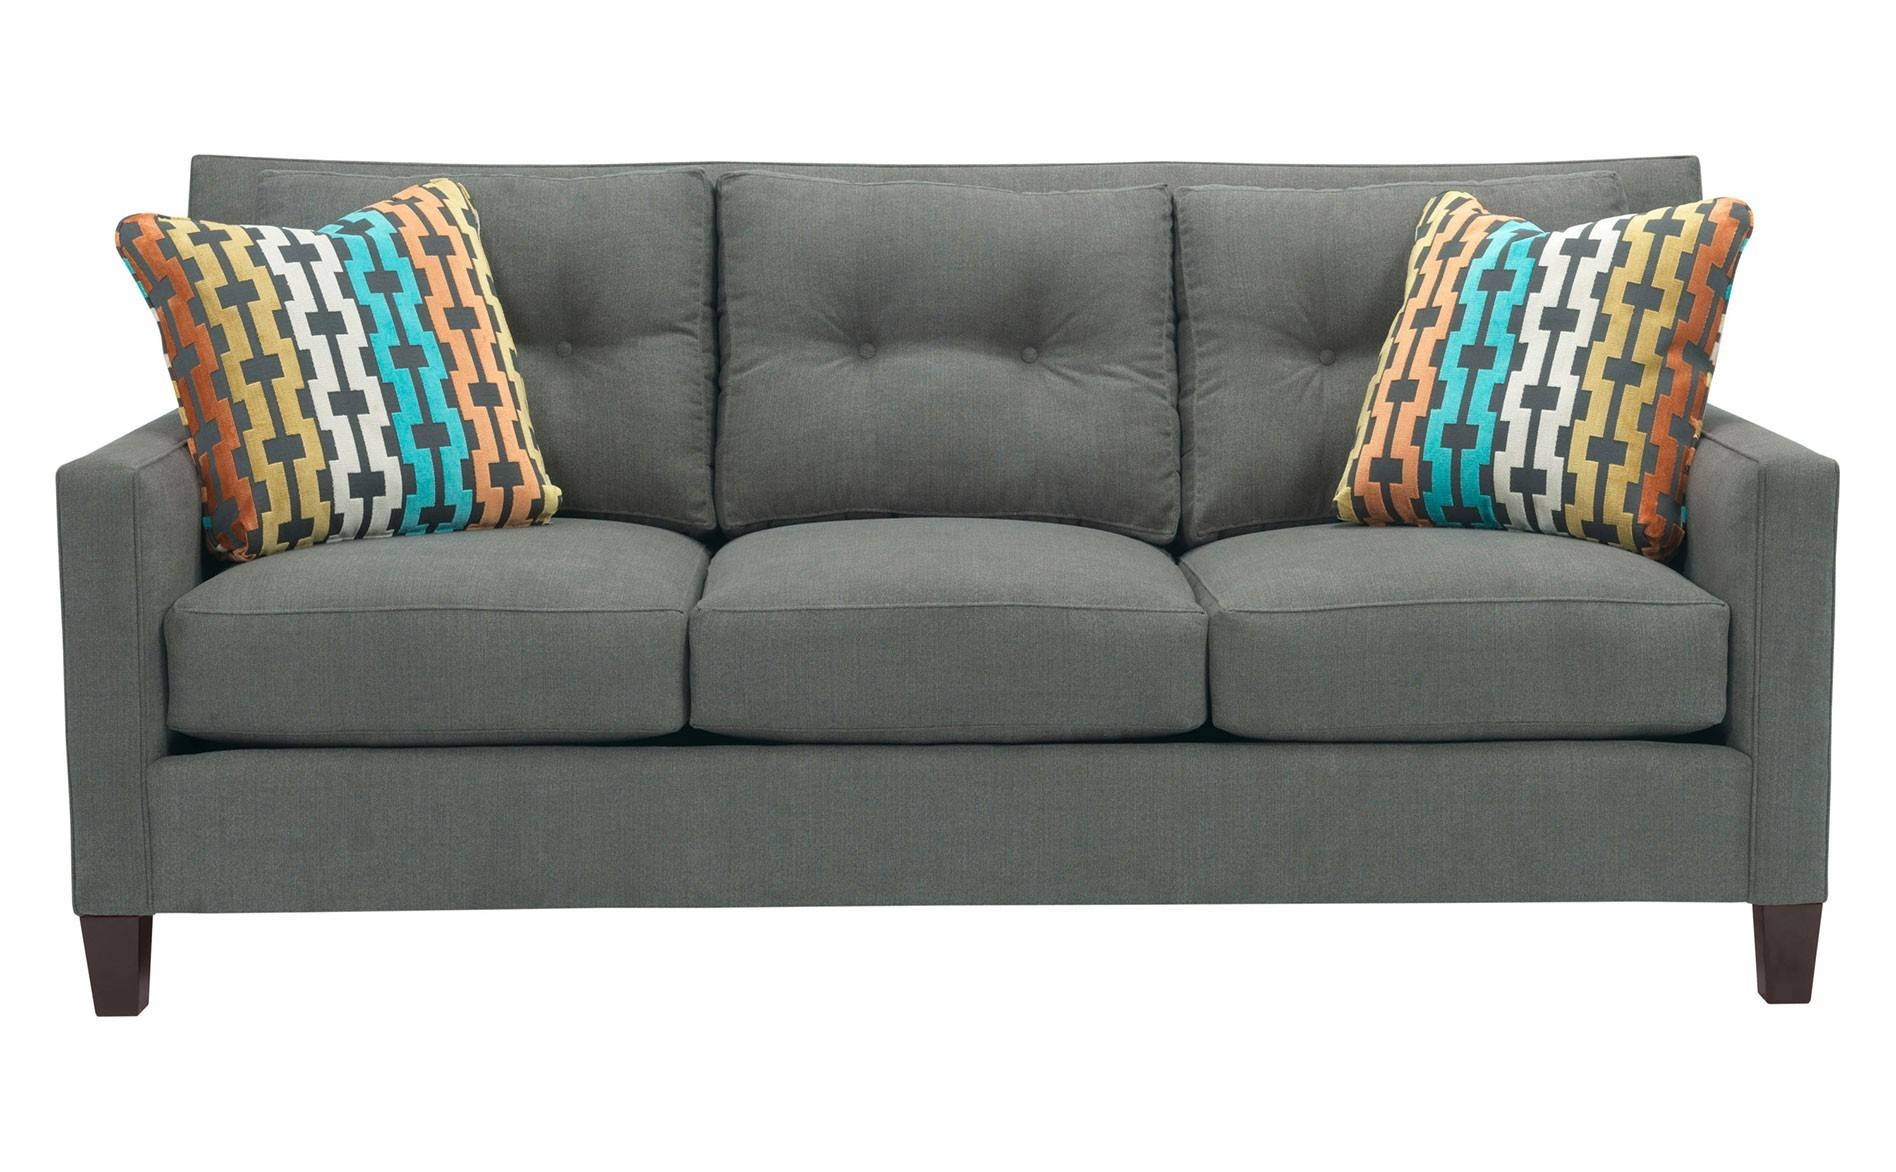 Broyhill Reclining Sofas And Broyhill Jevin Sofa Charcoal Sofas intended for Broyhill Reclining Sofas (Image 5 of 15)